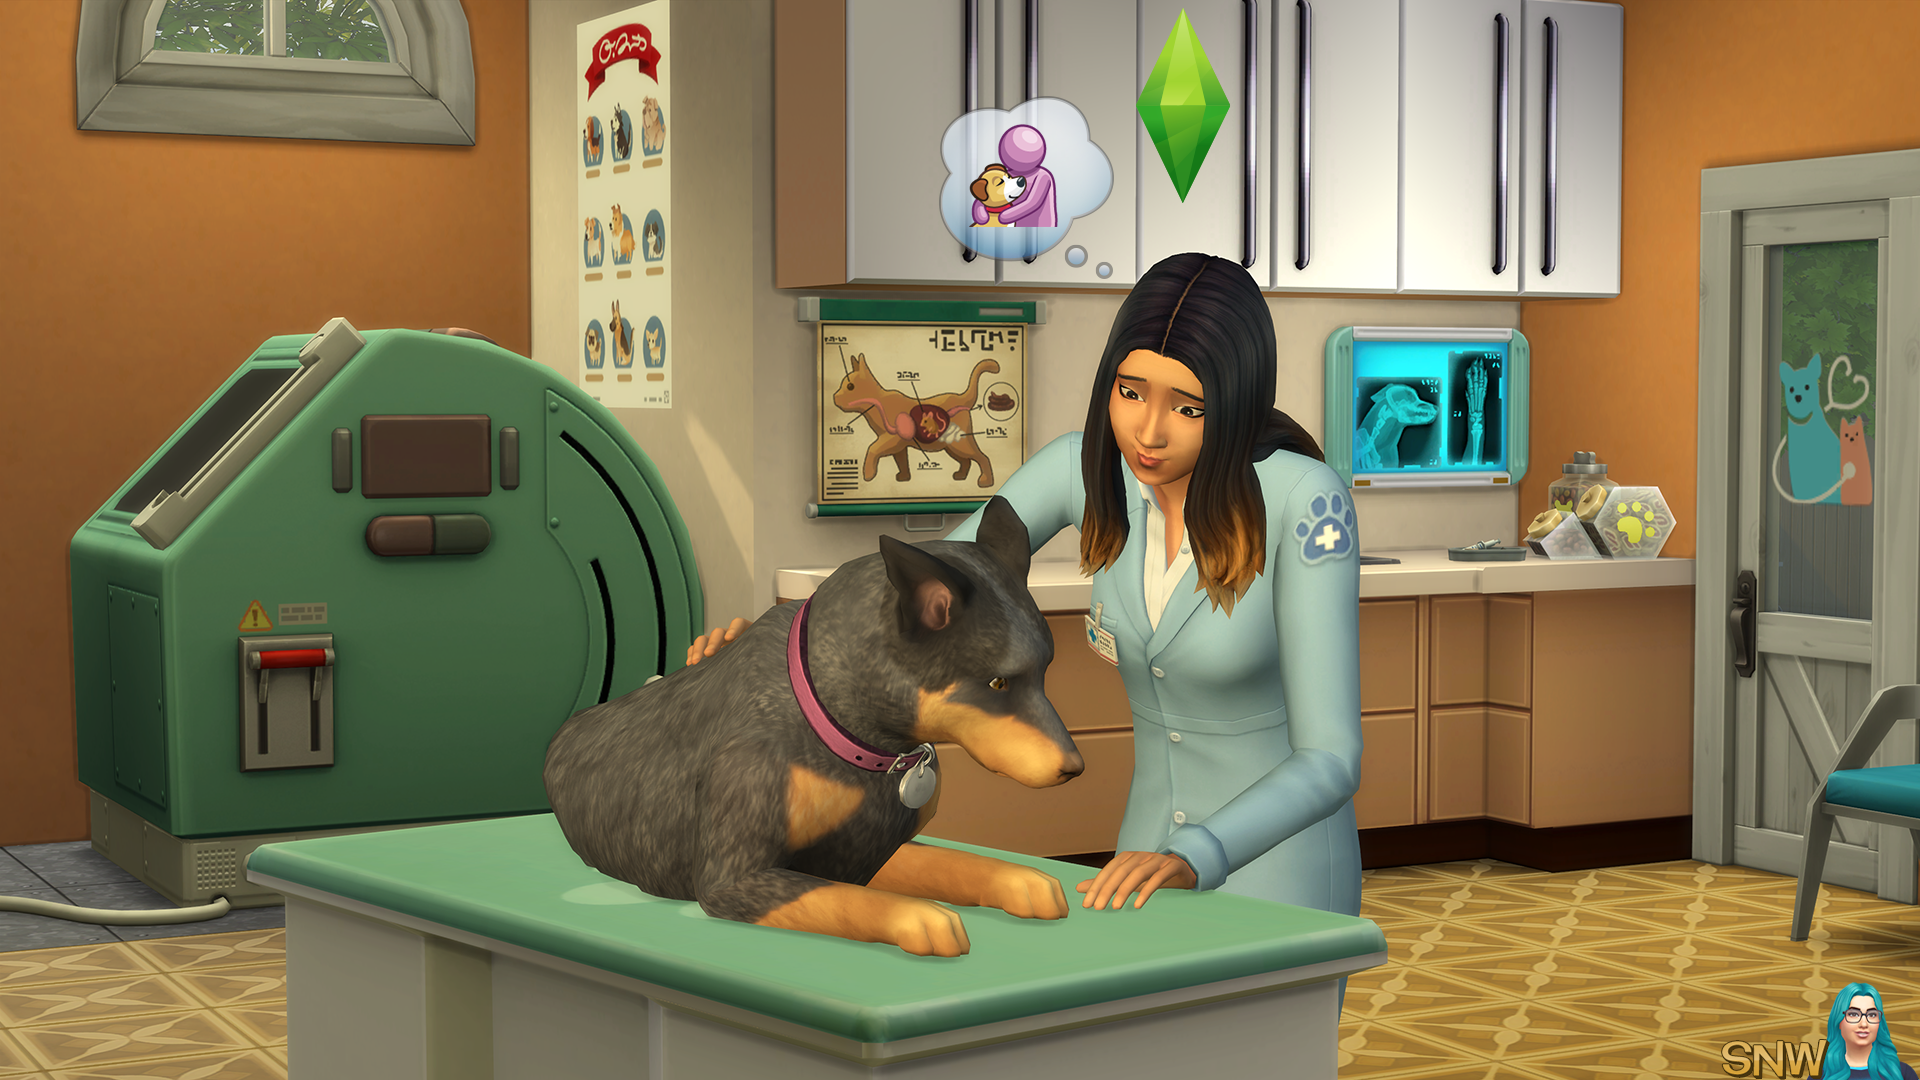 The Sims 4: Cats & Dogs